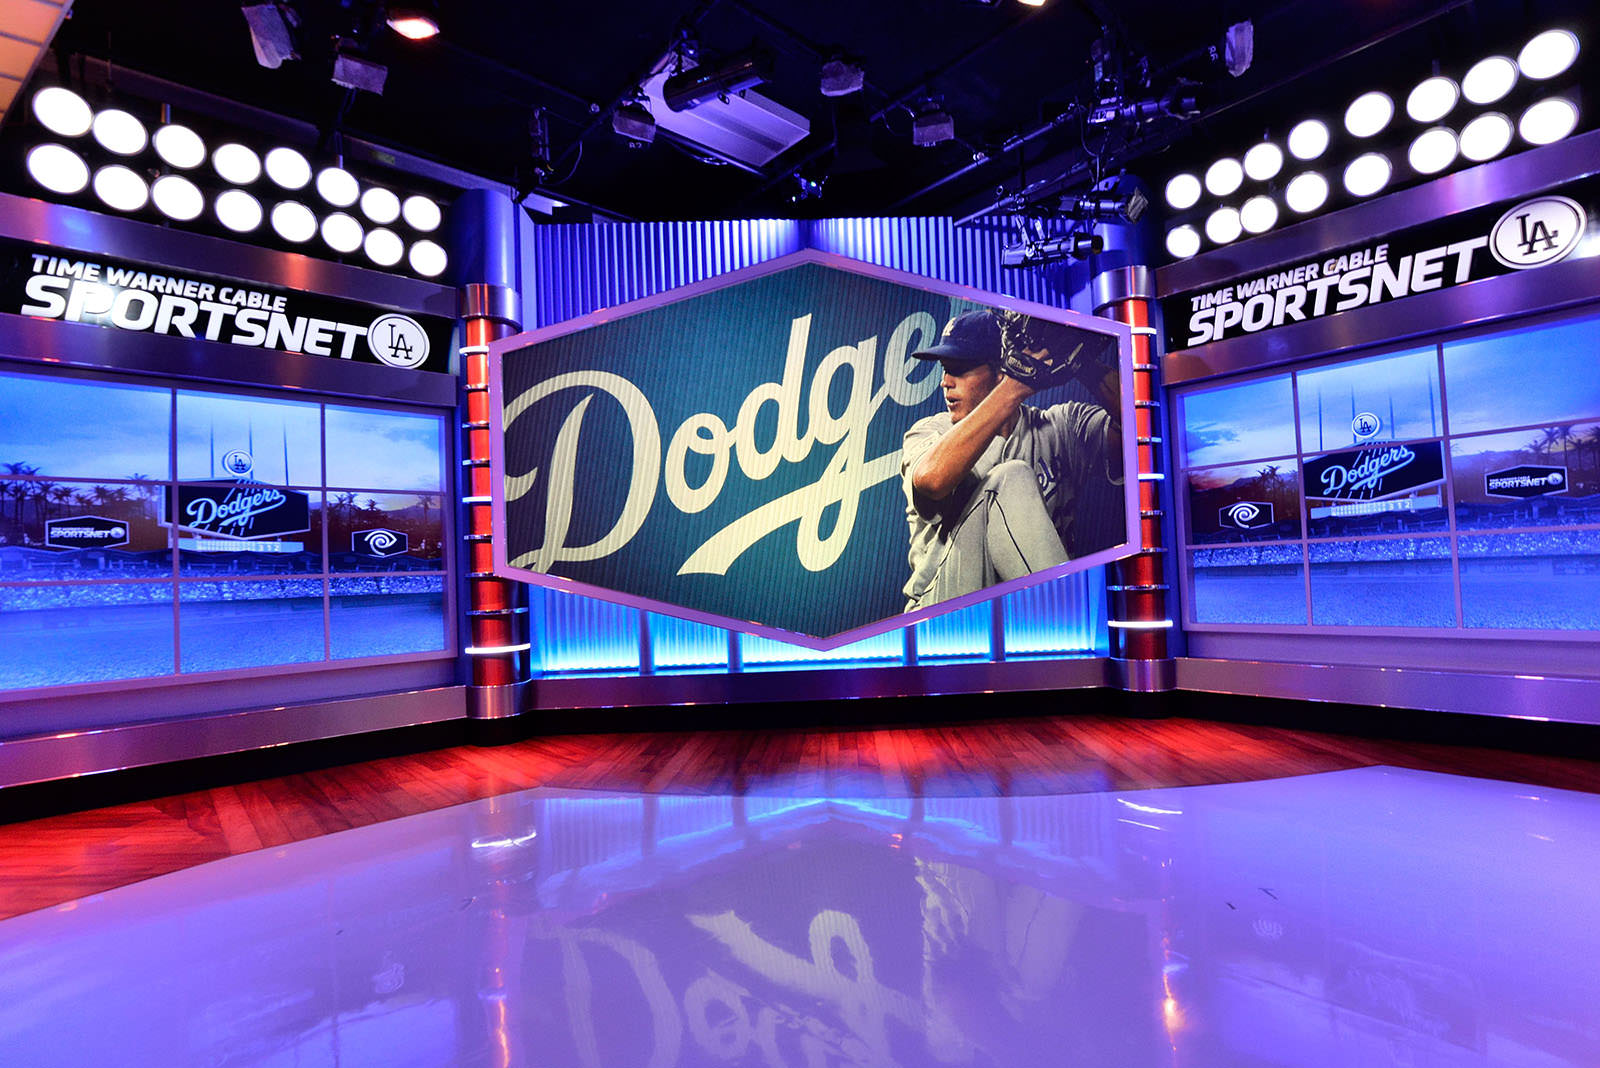 sportsnet dodgers mlb masn studio launch nesn contenders rsns running series segundo el tv directv collusion sues justice department centric